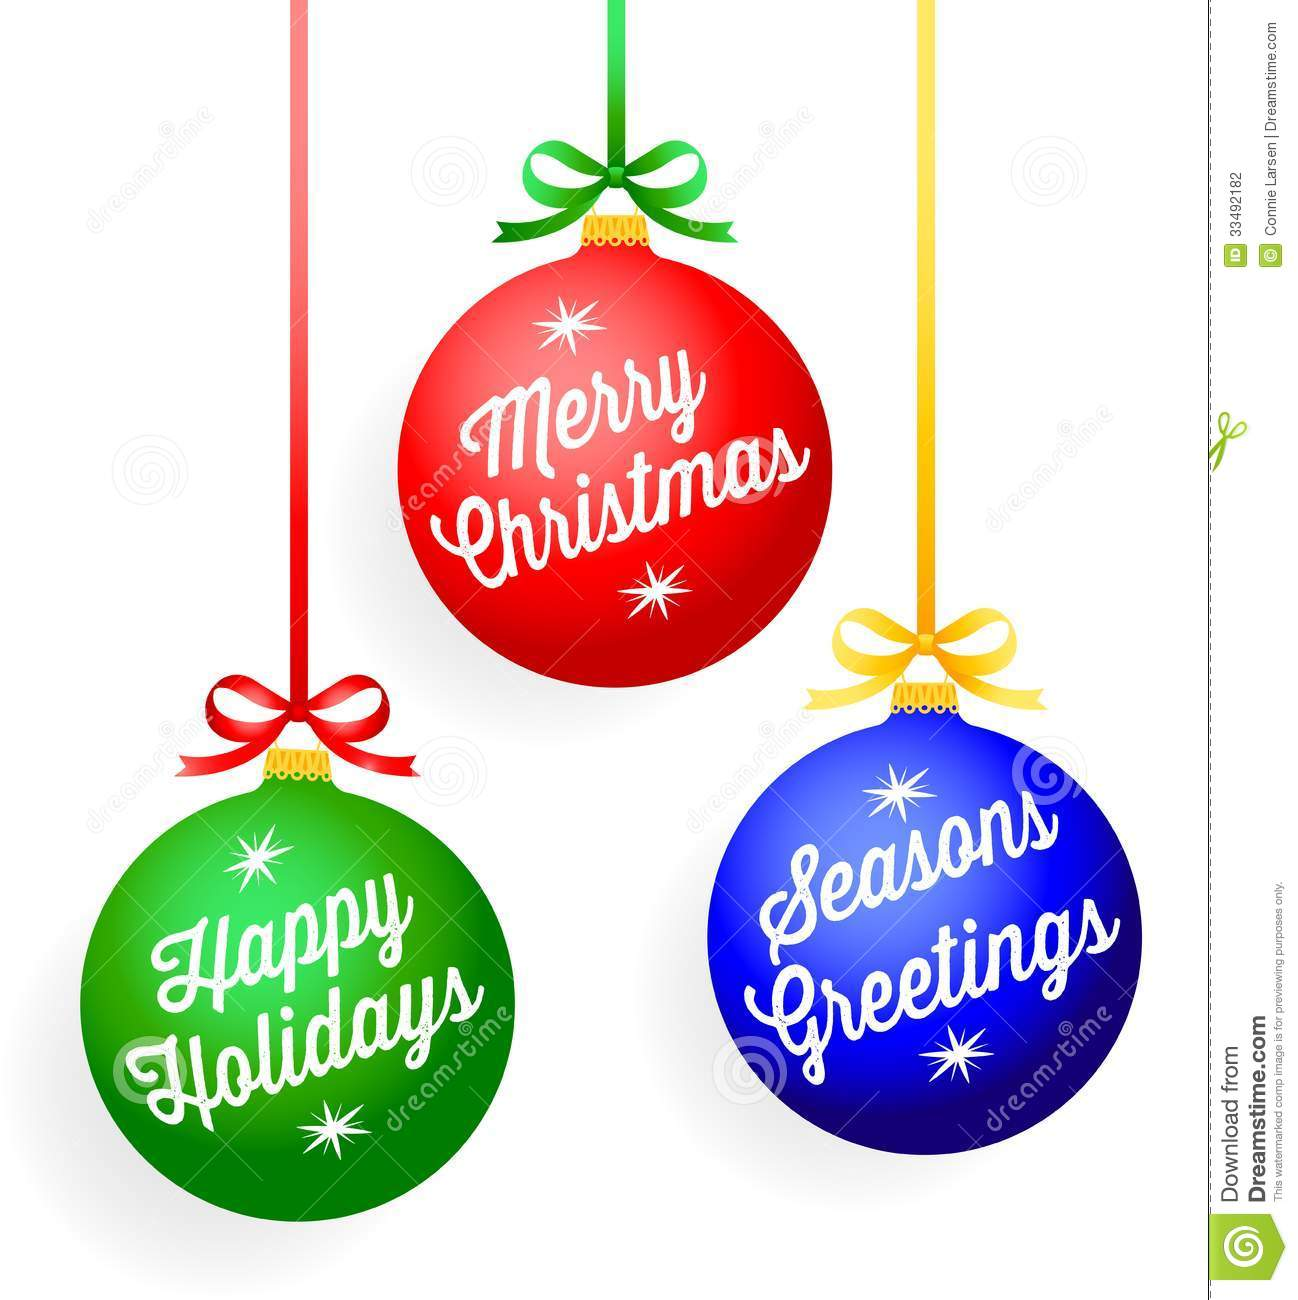 Holiday greetings clipart clipground greetings stock illustrations m4hsunfo